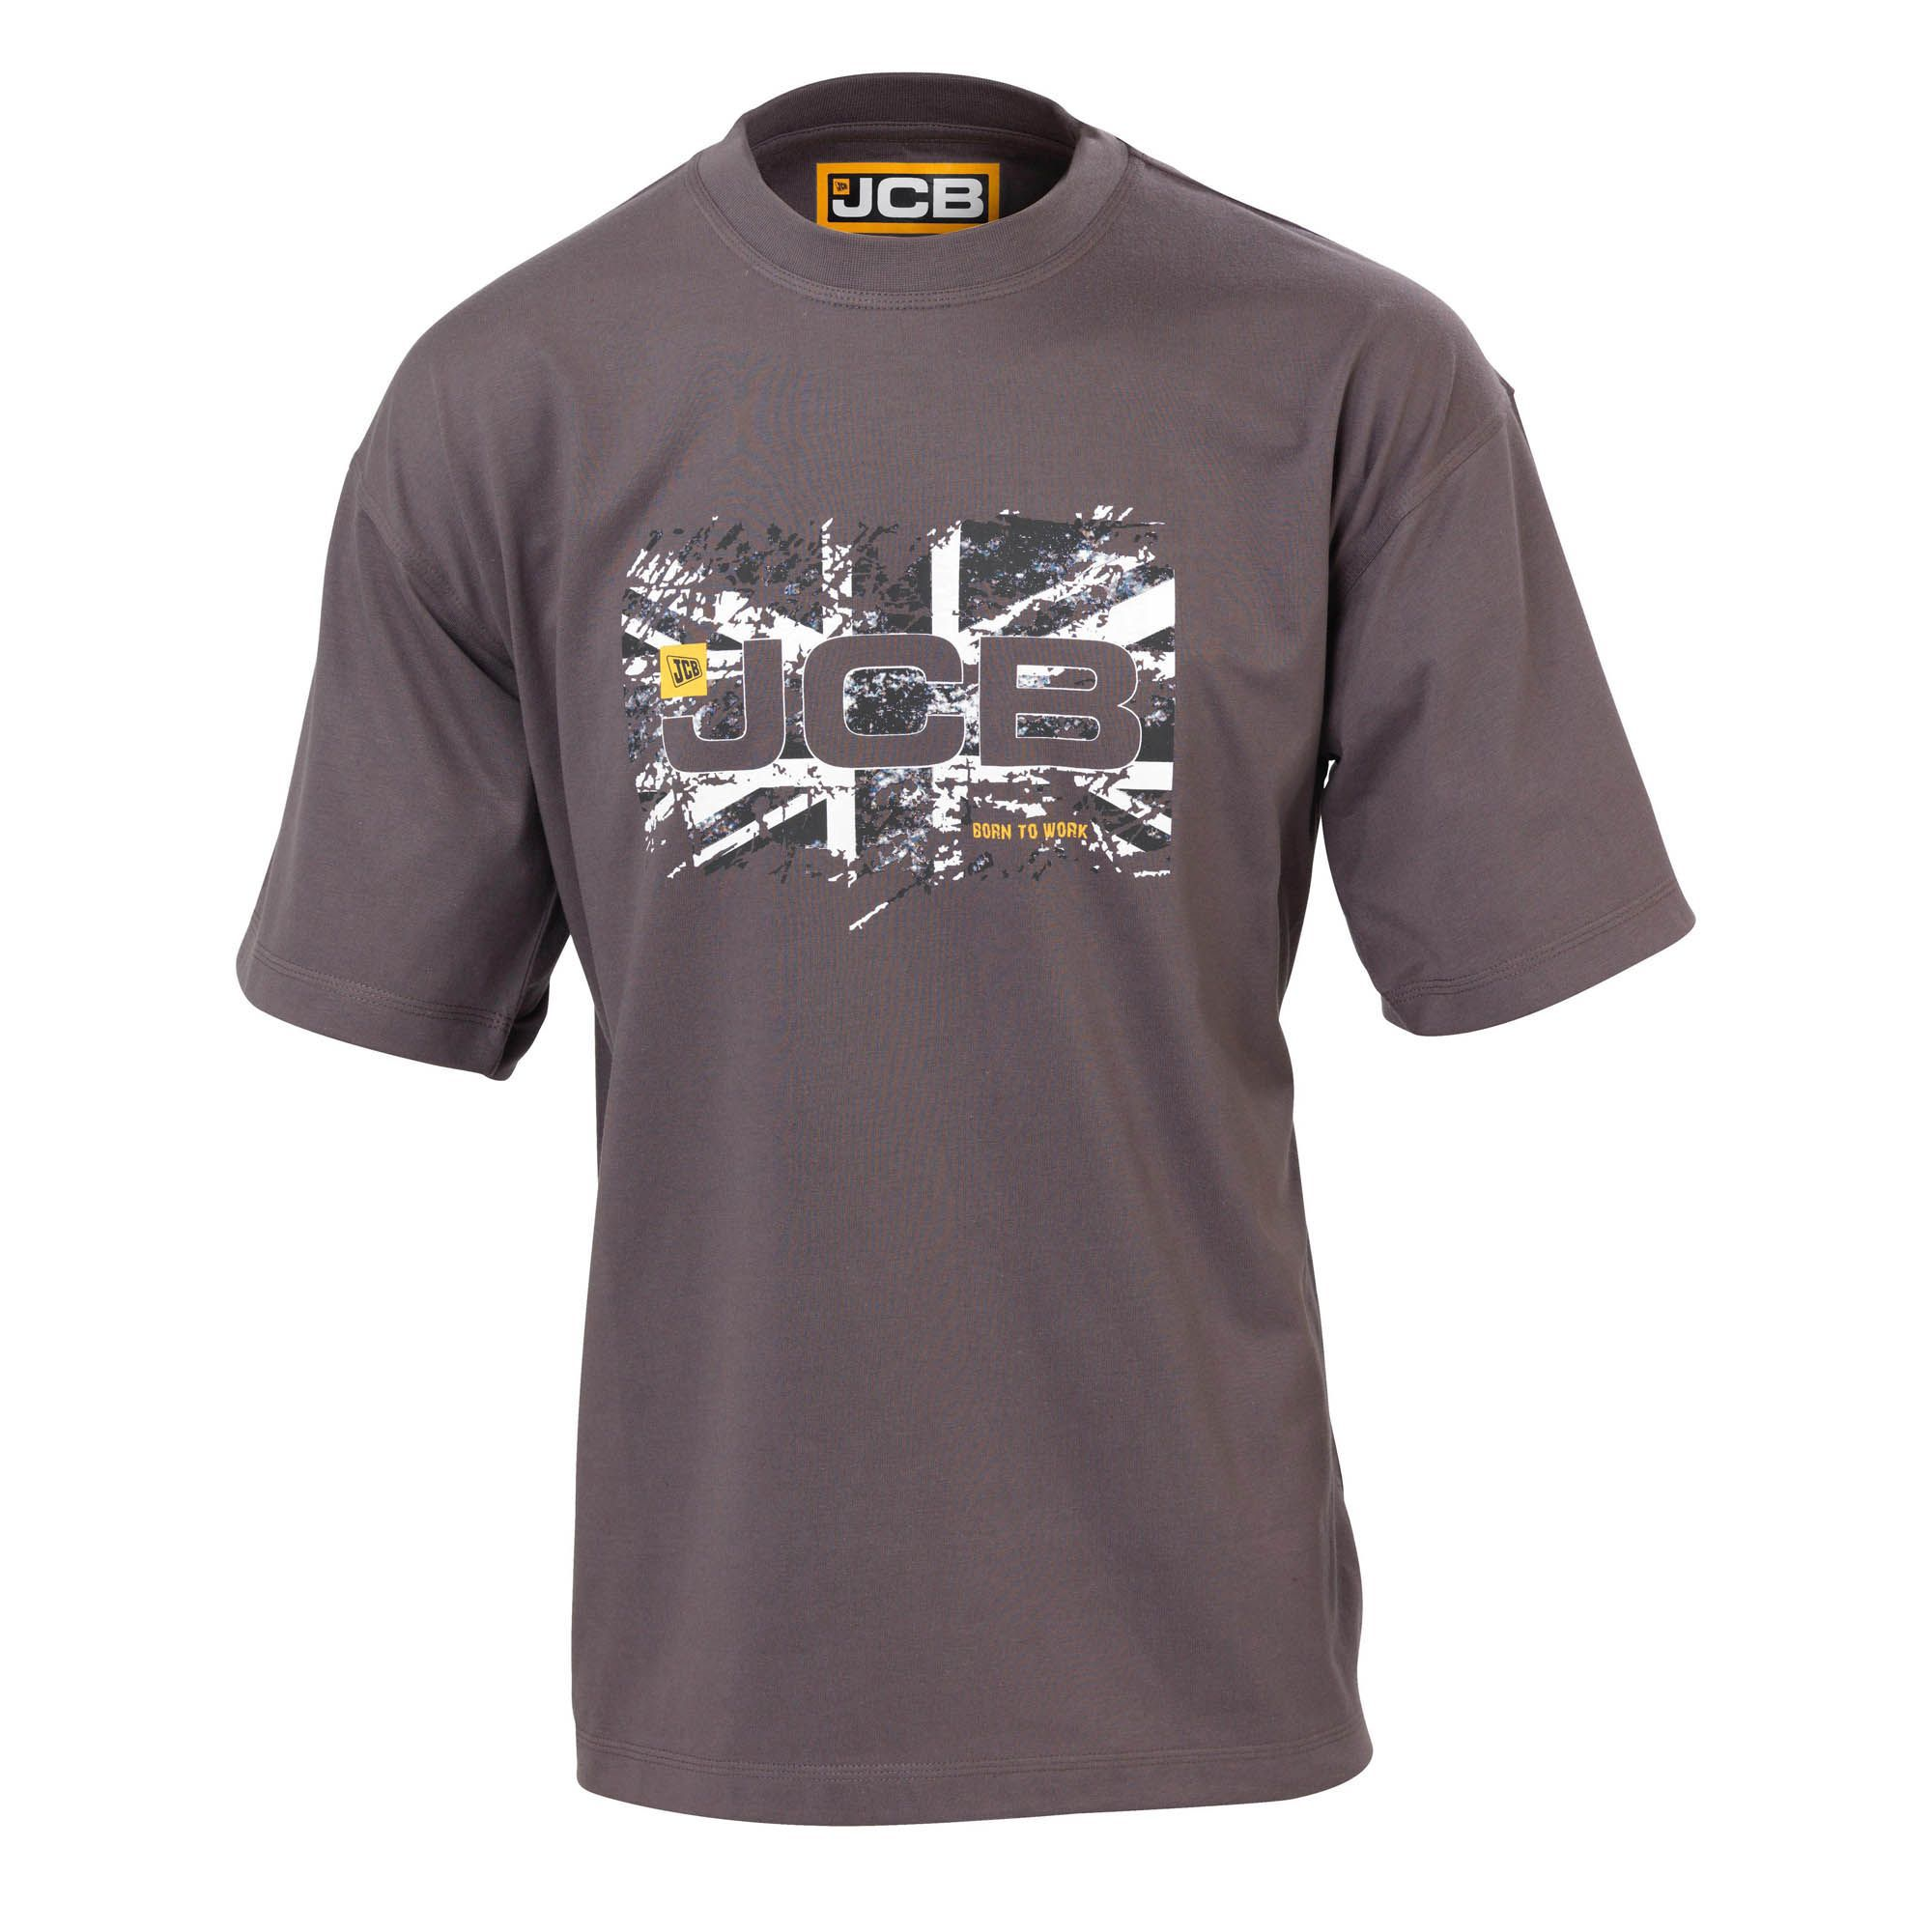 Jcb Grey Heritage T-shirt Large